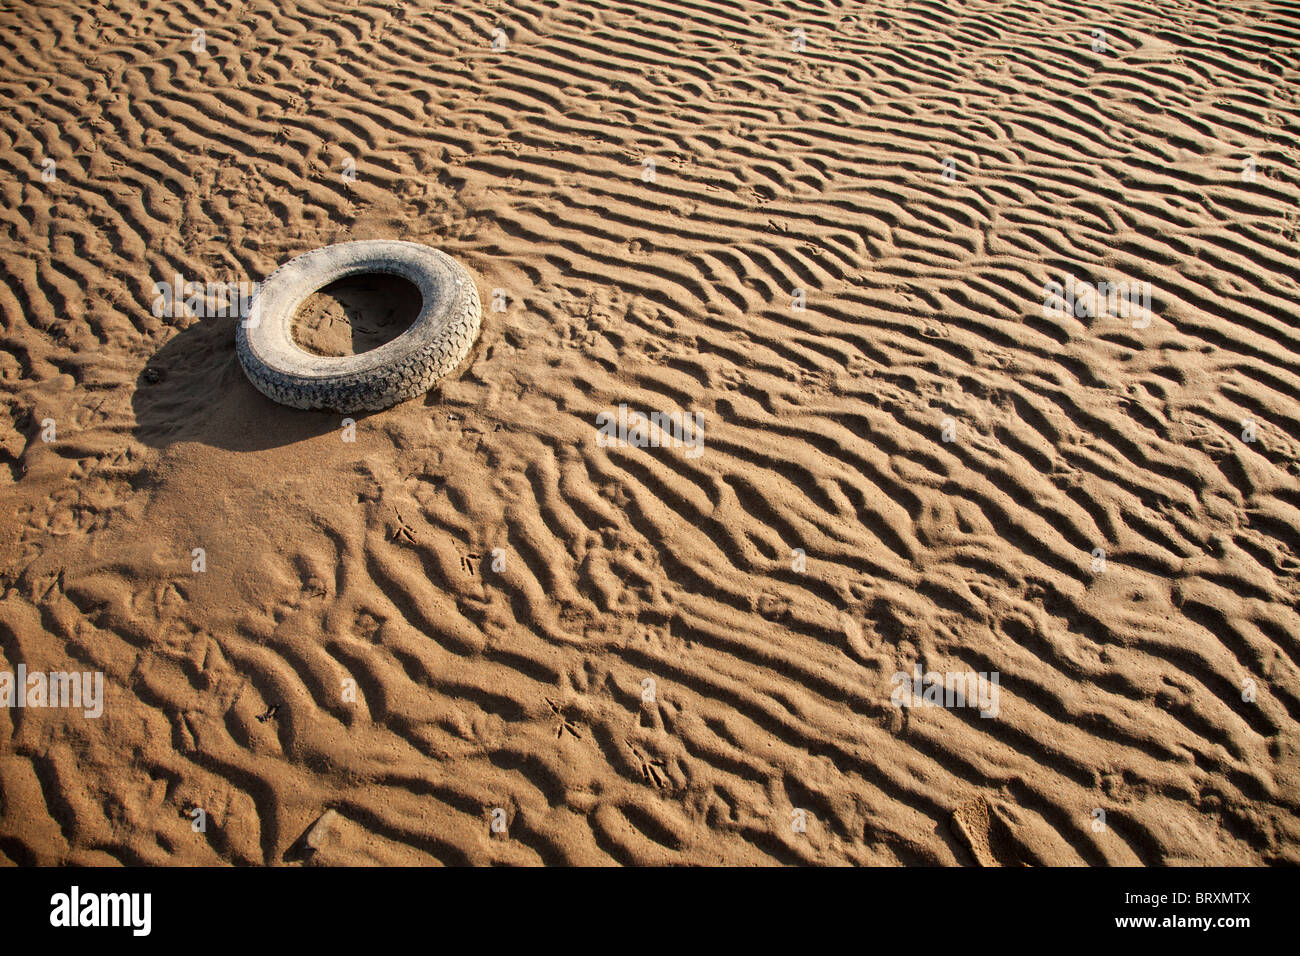 Discarded car tyre at sand beach - Stock Image